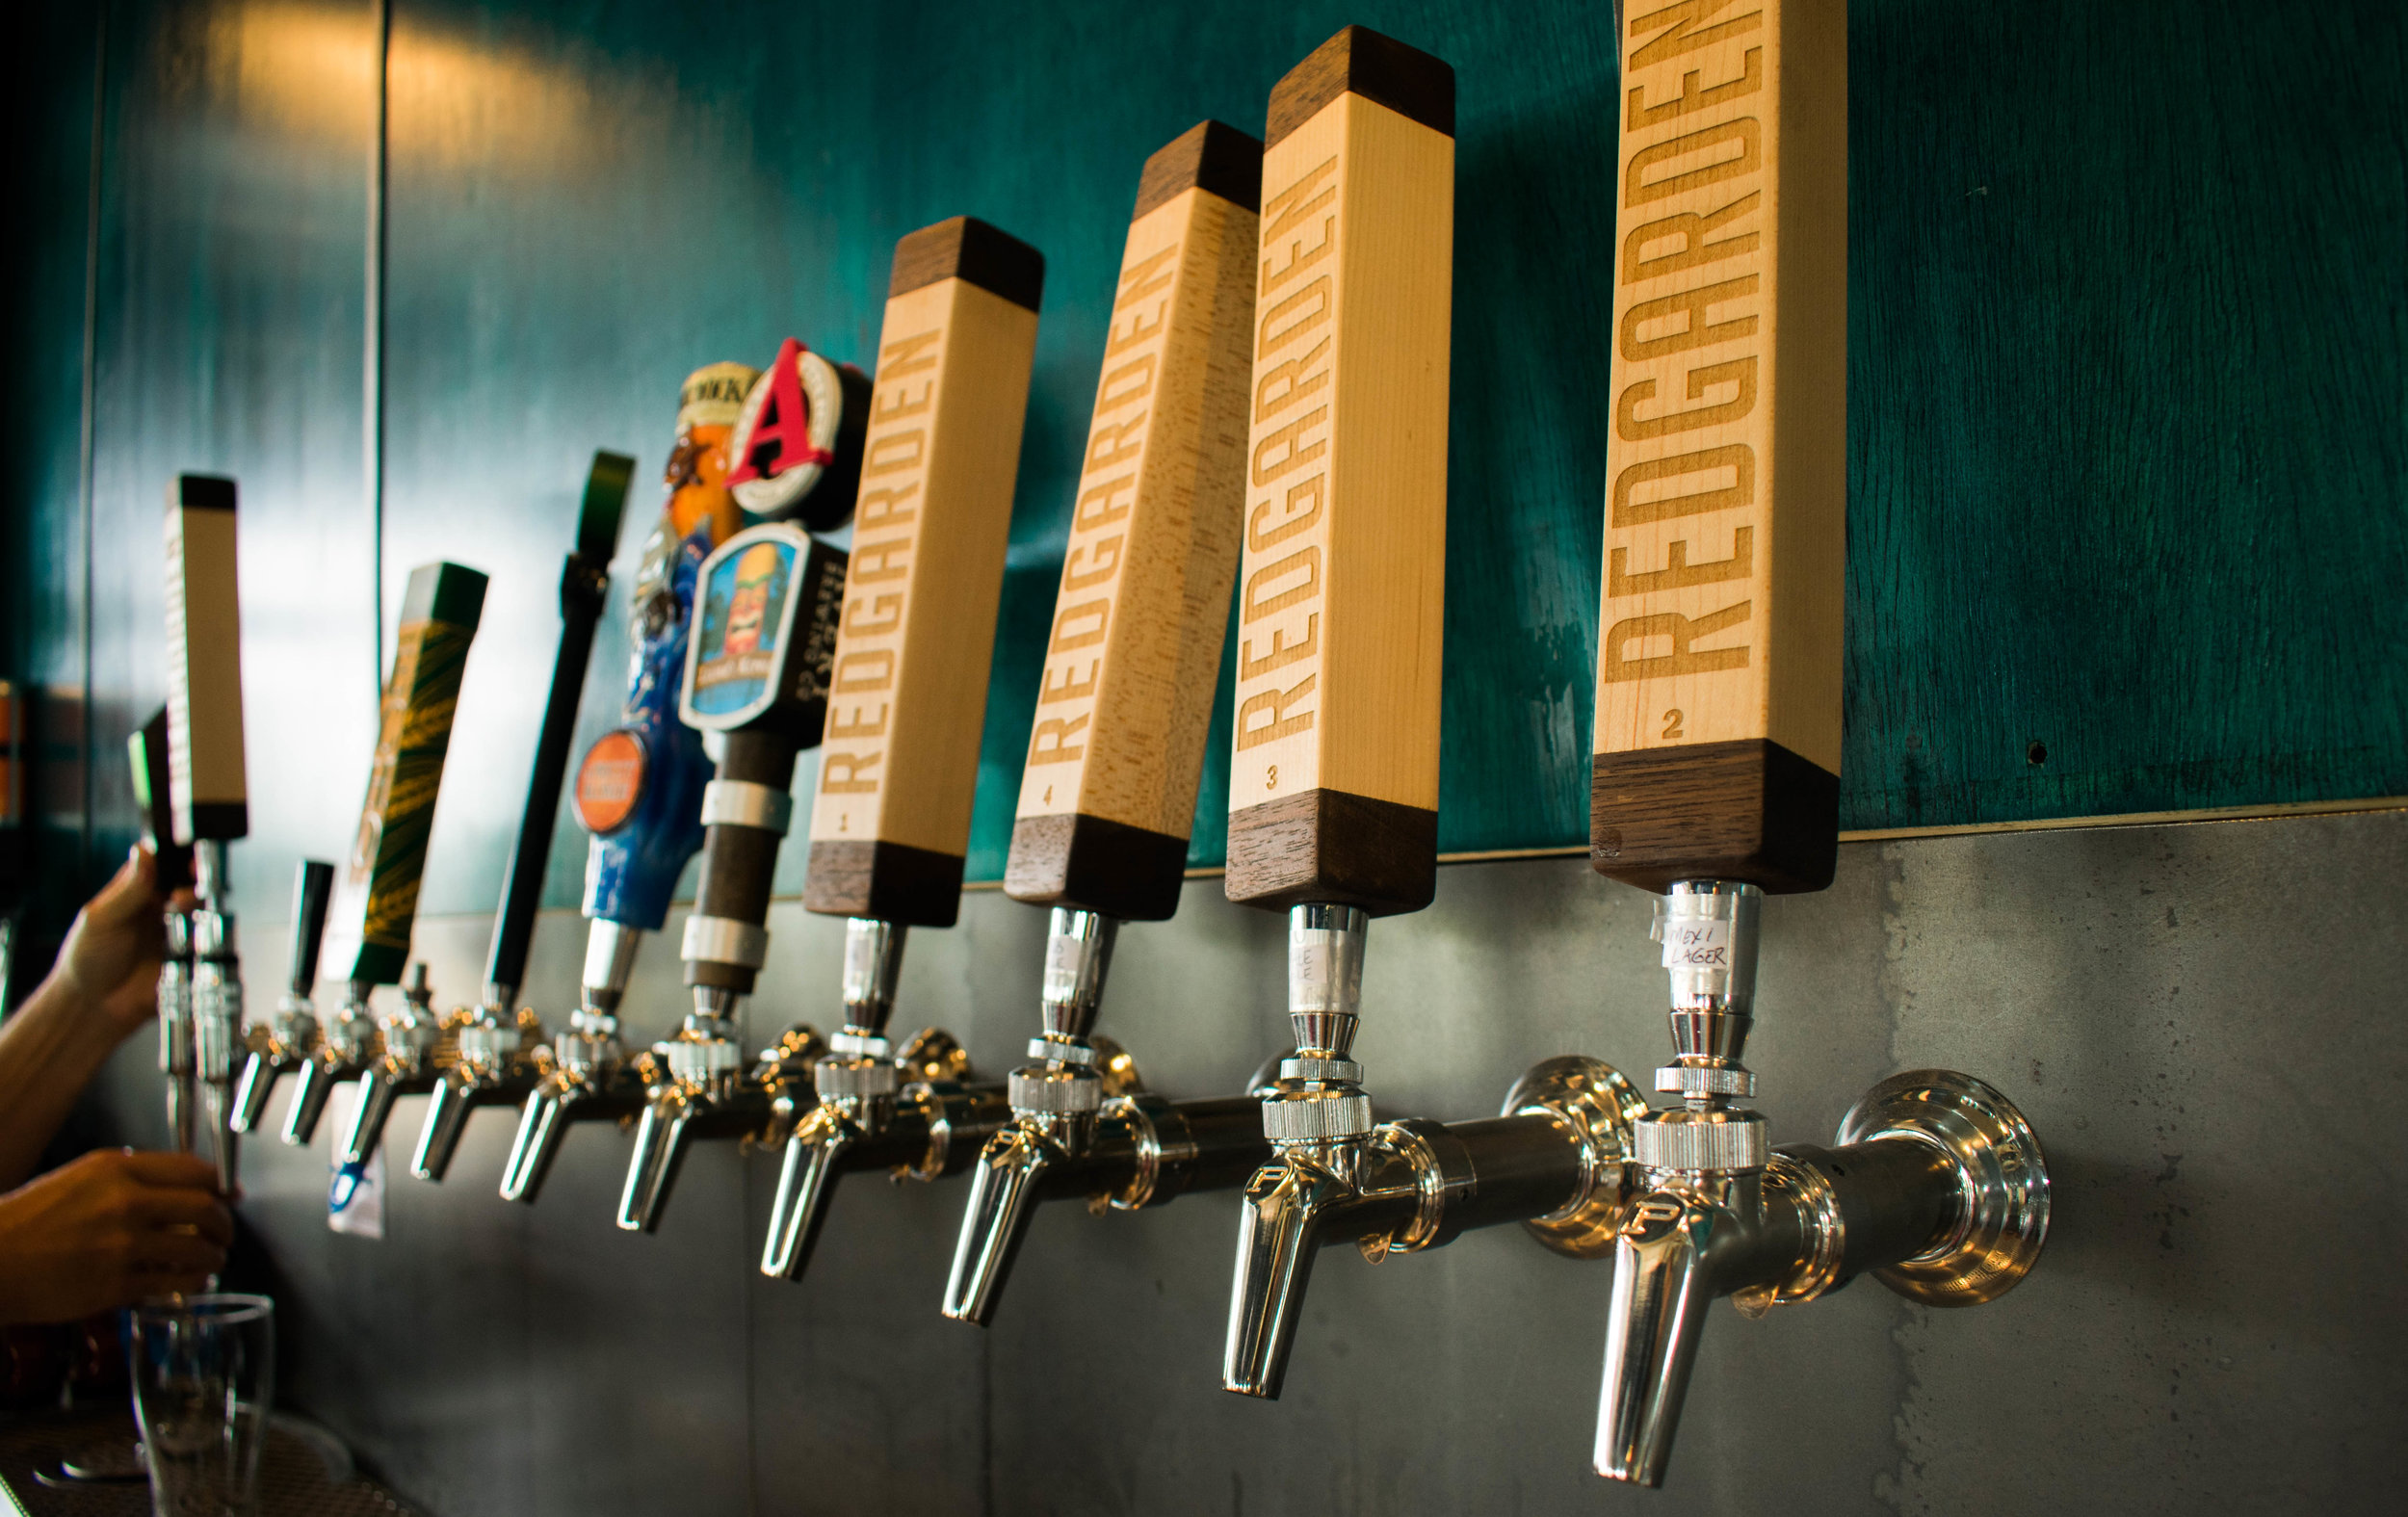 HOUSE-CRAFTED ALES AND LAGERS